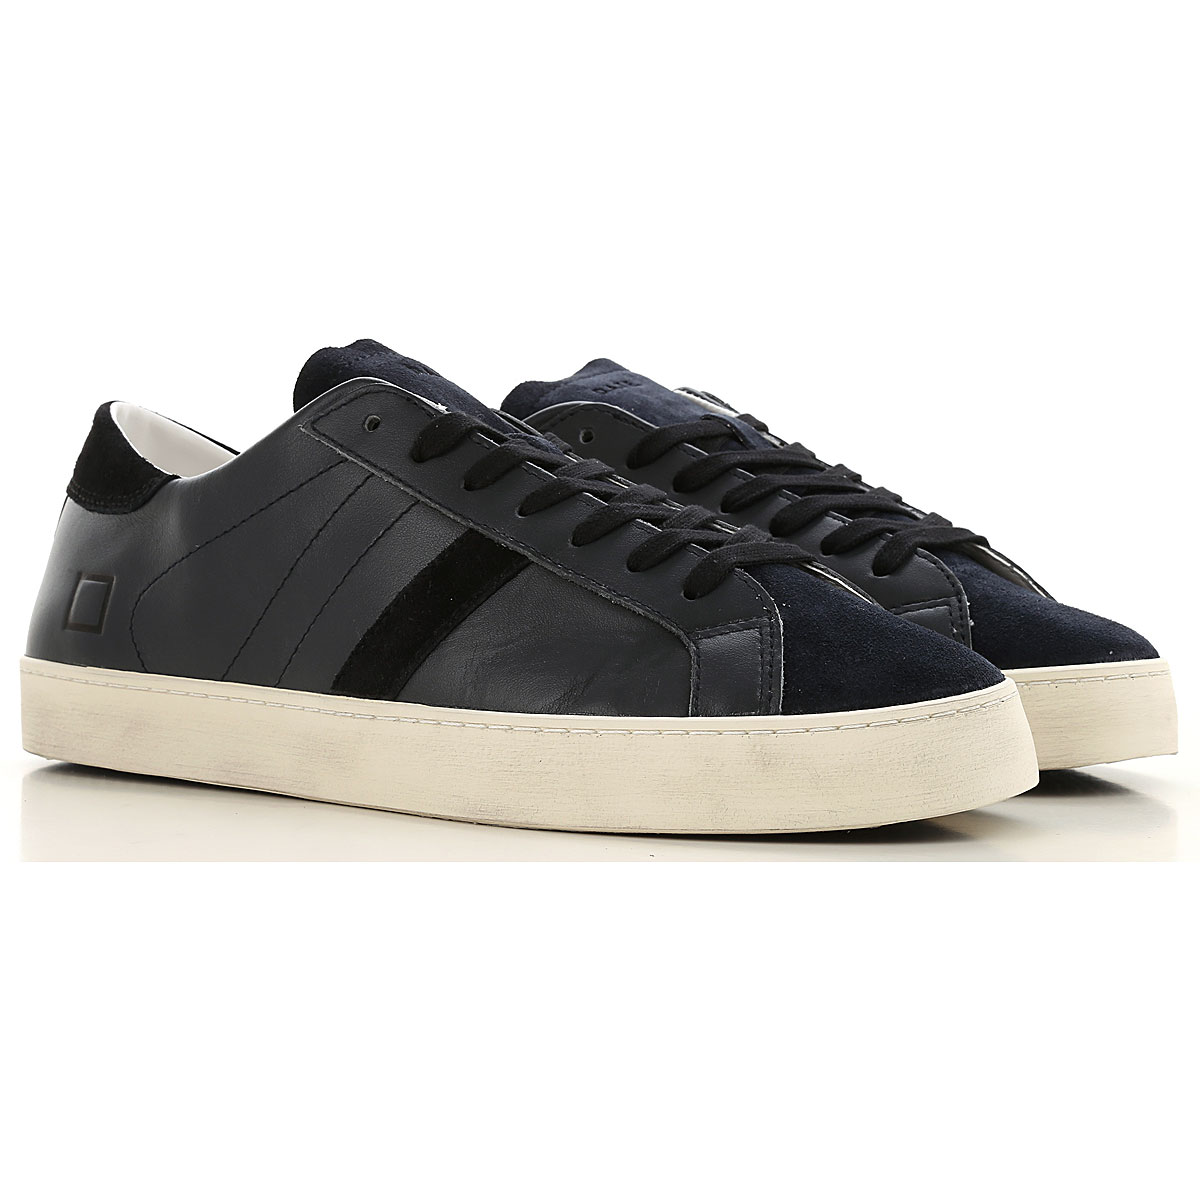 D.A.T.E. Sneakers for Men On Sale, Black, Leather, 2019, 7